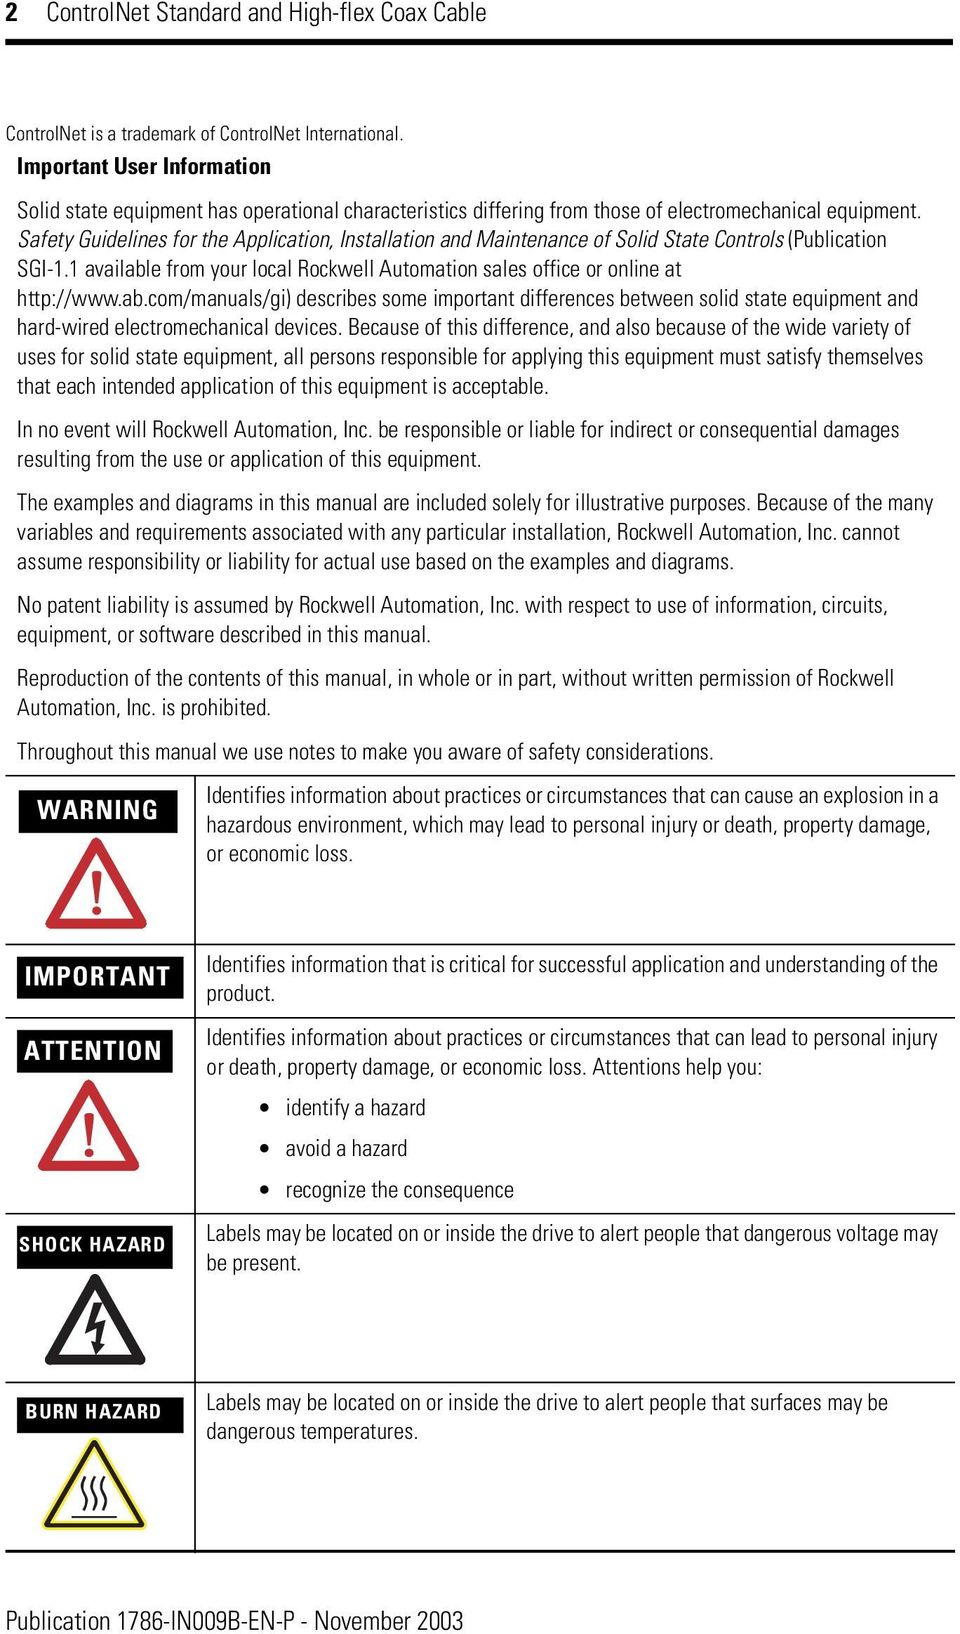 Safety Guidelines for the Application, Installation and Maintenance of Solid State Controls (Publication SGI-1.1 availabl